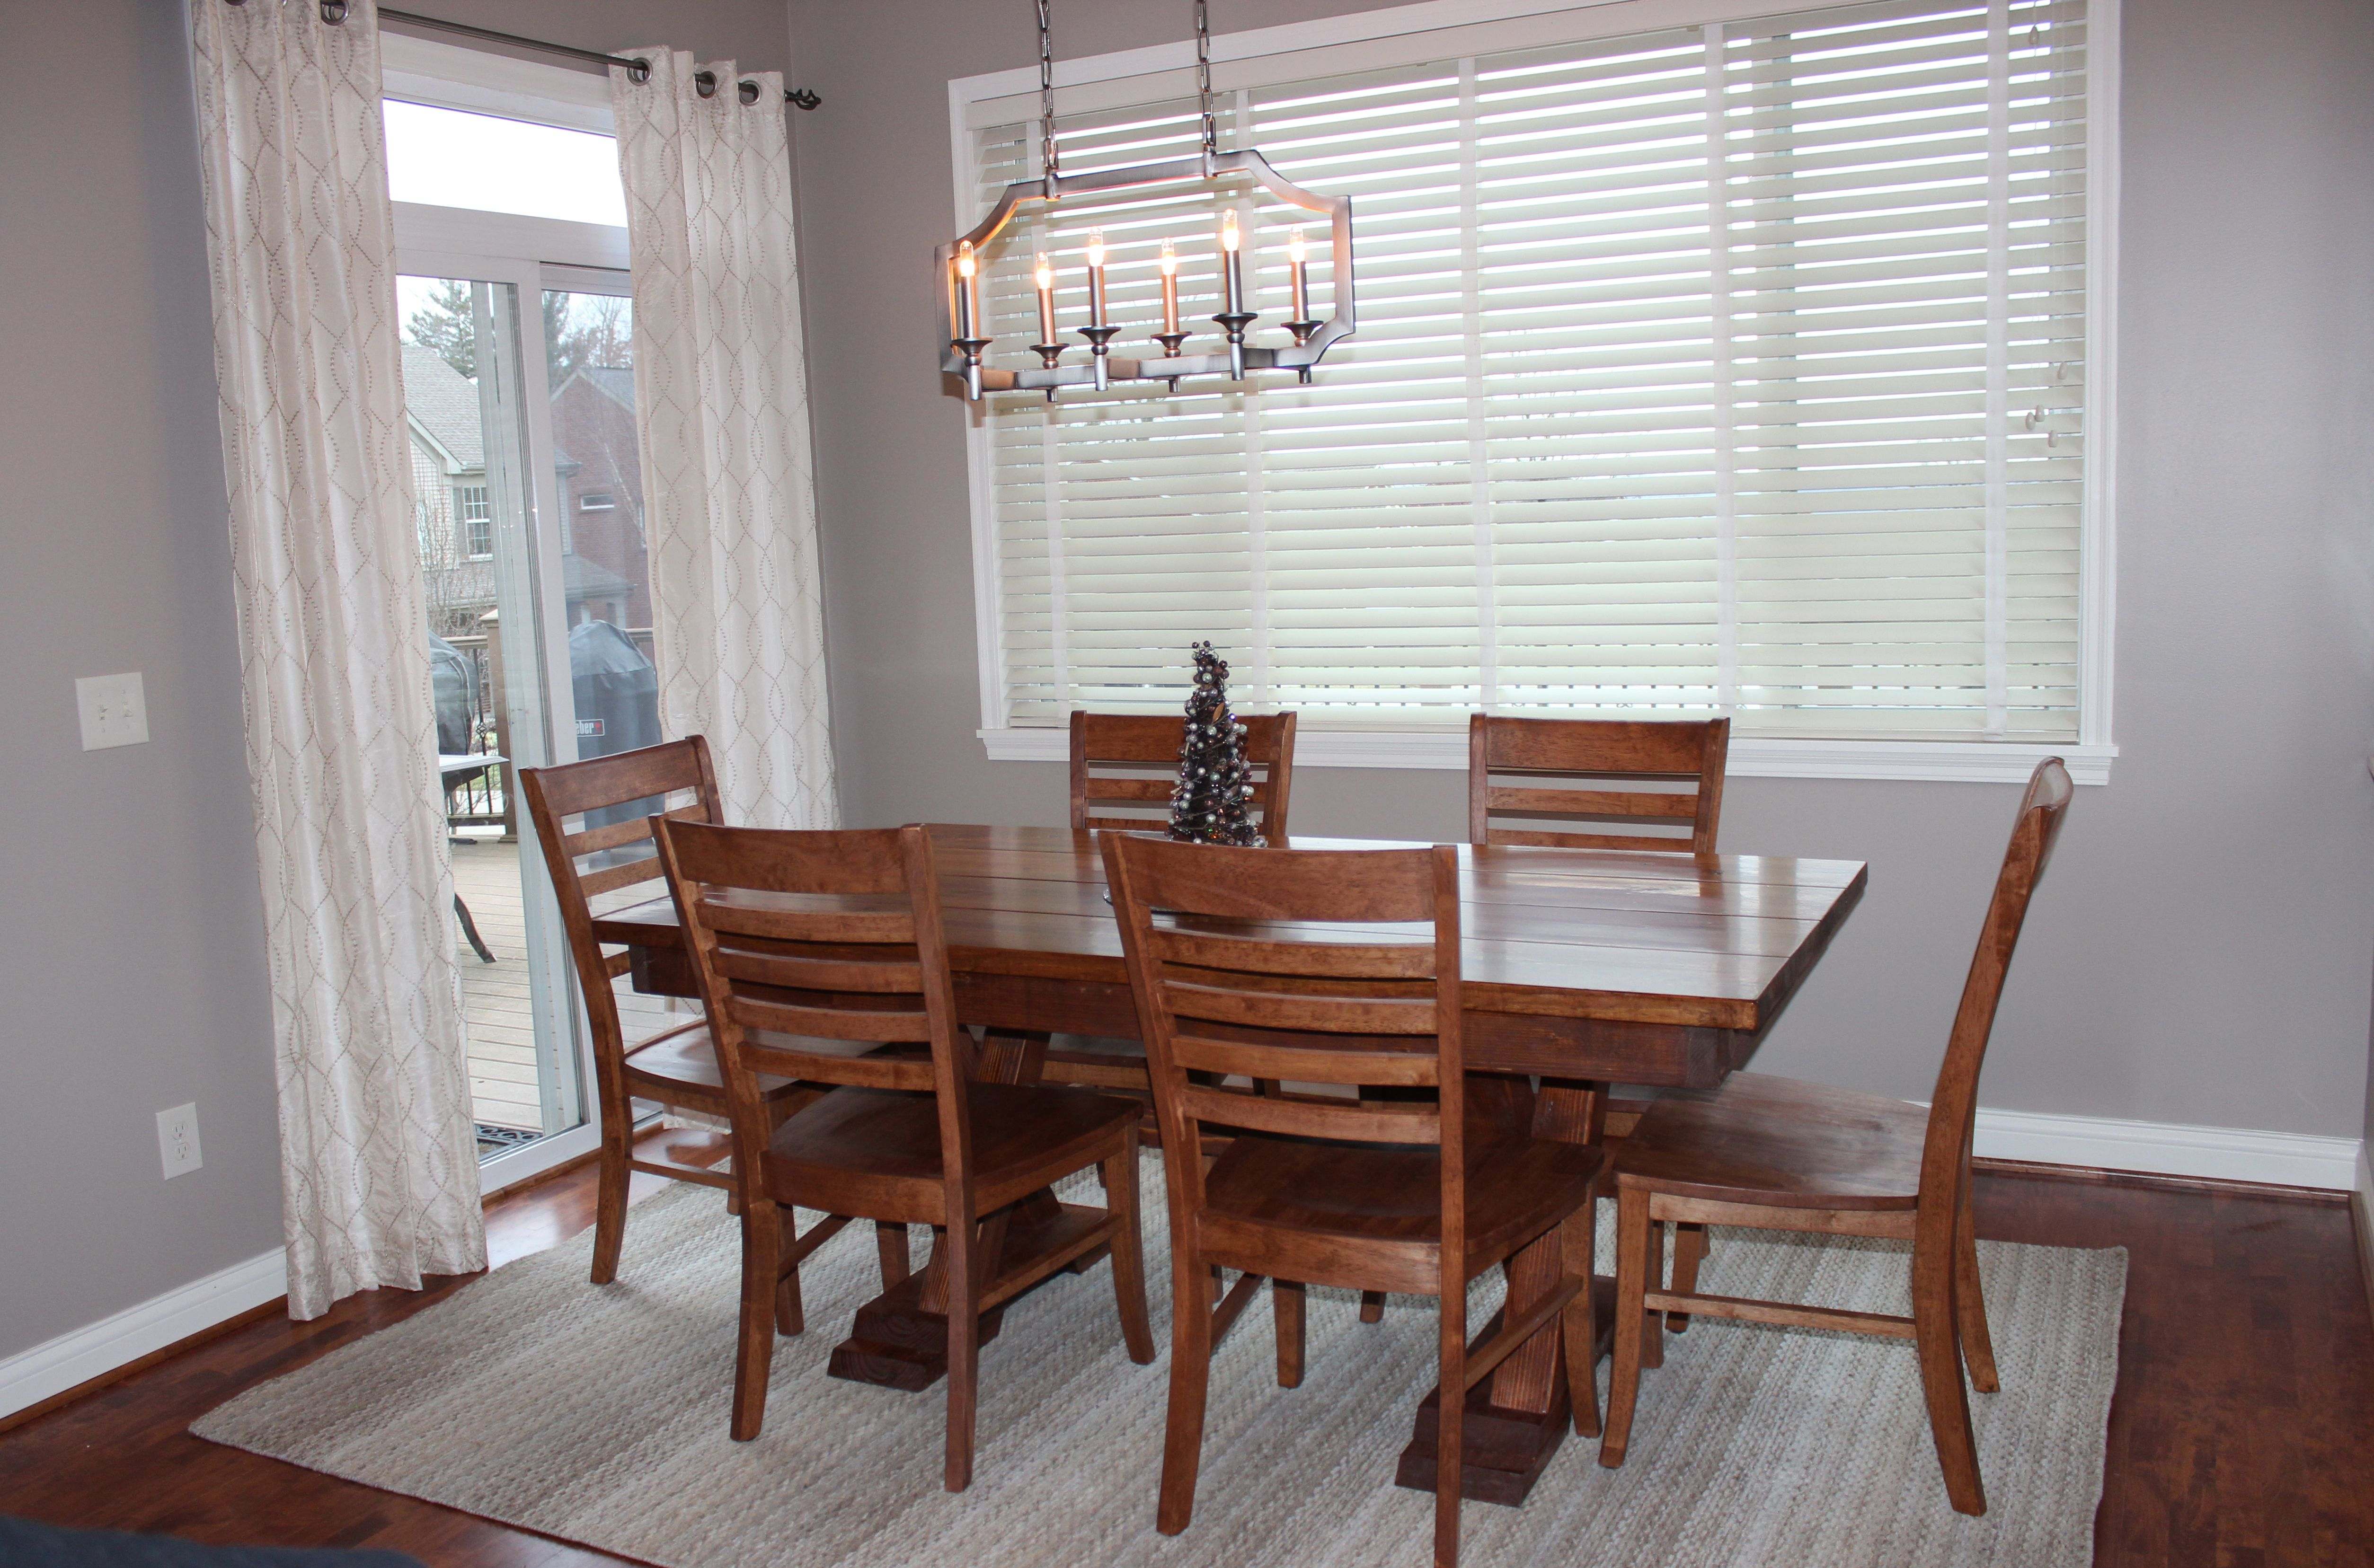 James+James 6 foot Trestle table stained in Dark Walnut with matching Thomas Dining Chairs.